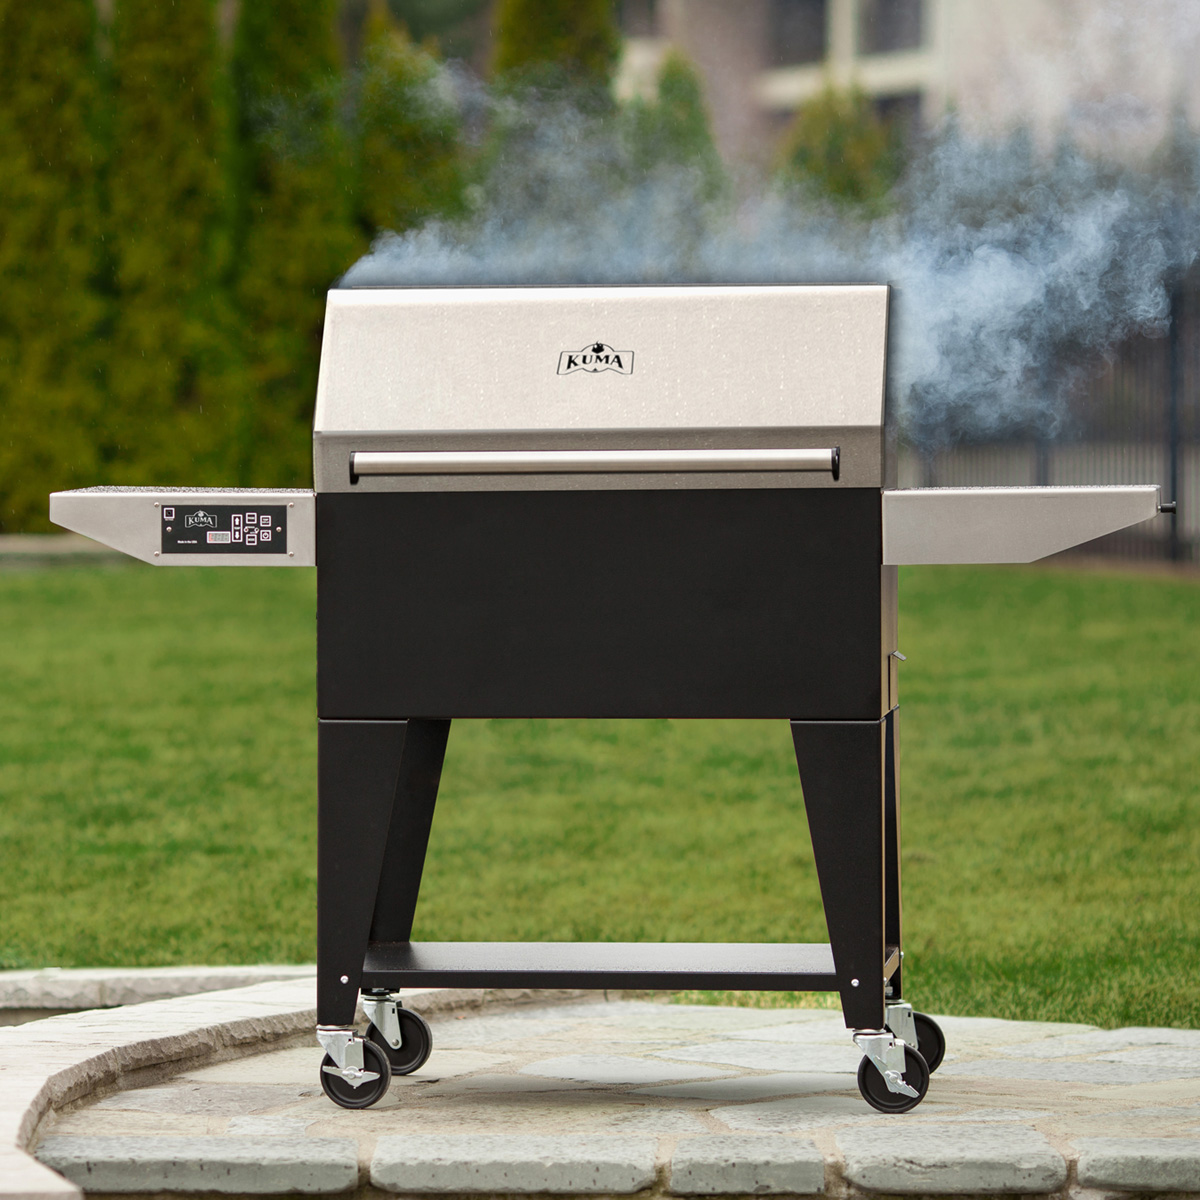 Kuma Platinum SE pellet grill, made in the USA